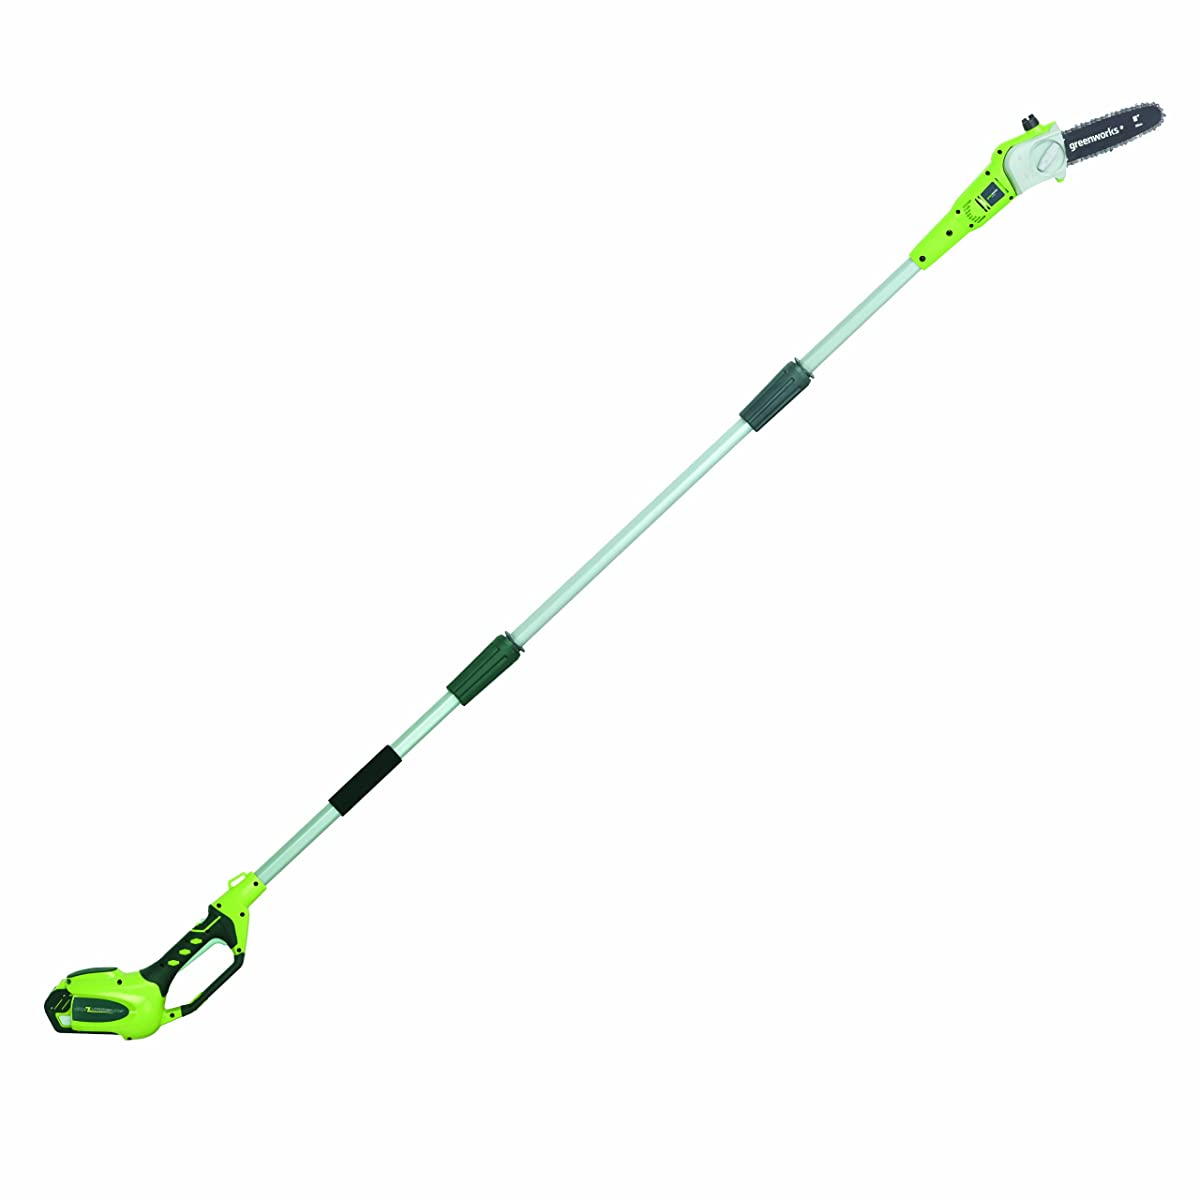 Greenworks 8.5 40V Cordless Pole Saw, 2.0 AH Battery Included 20672